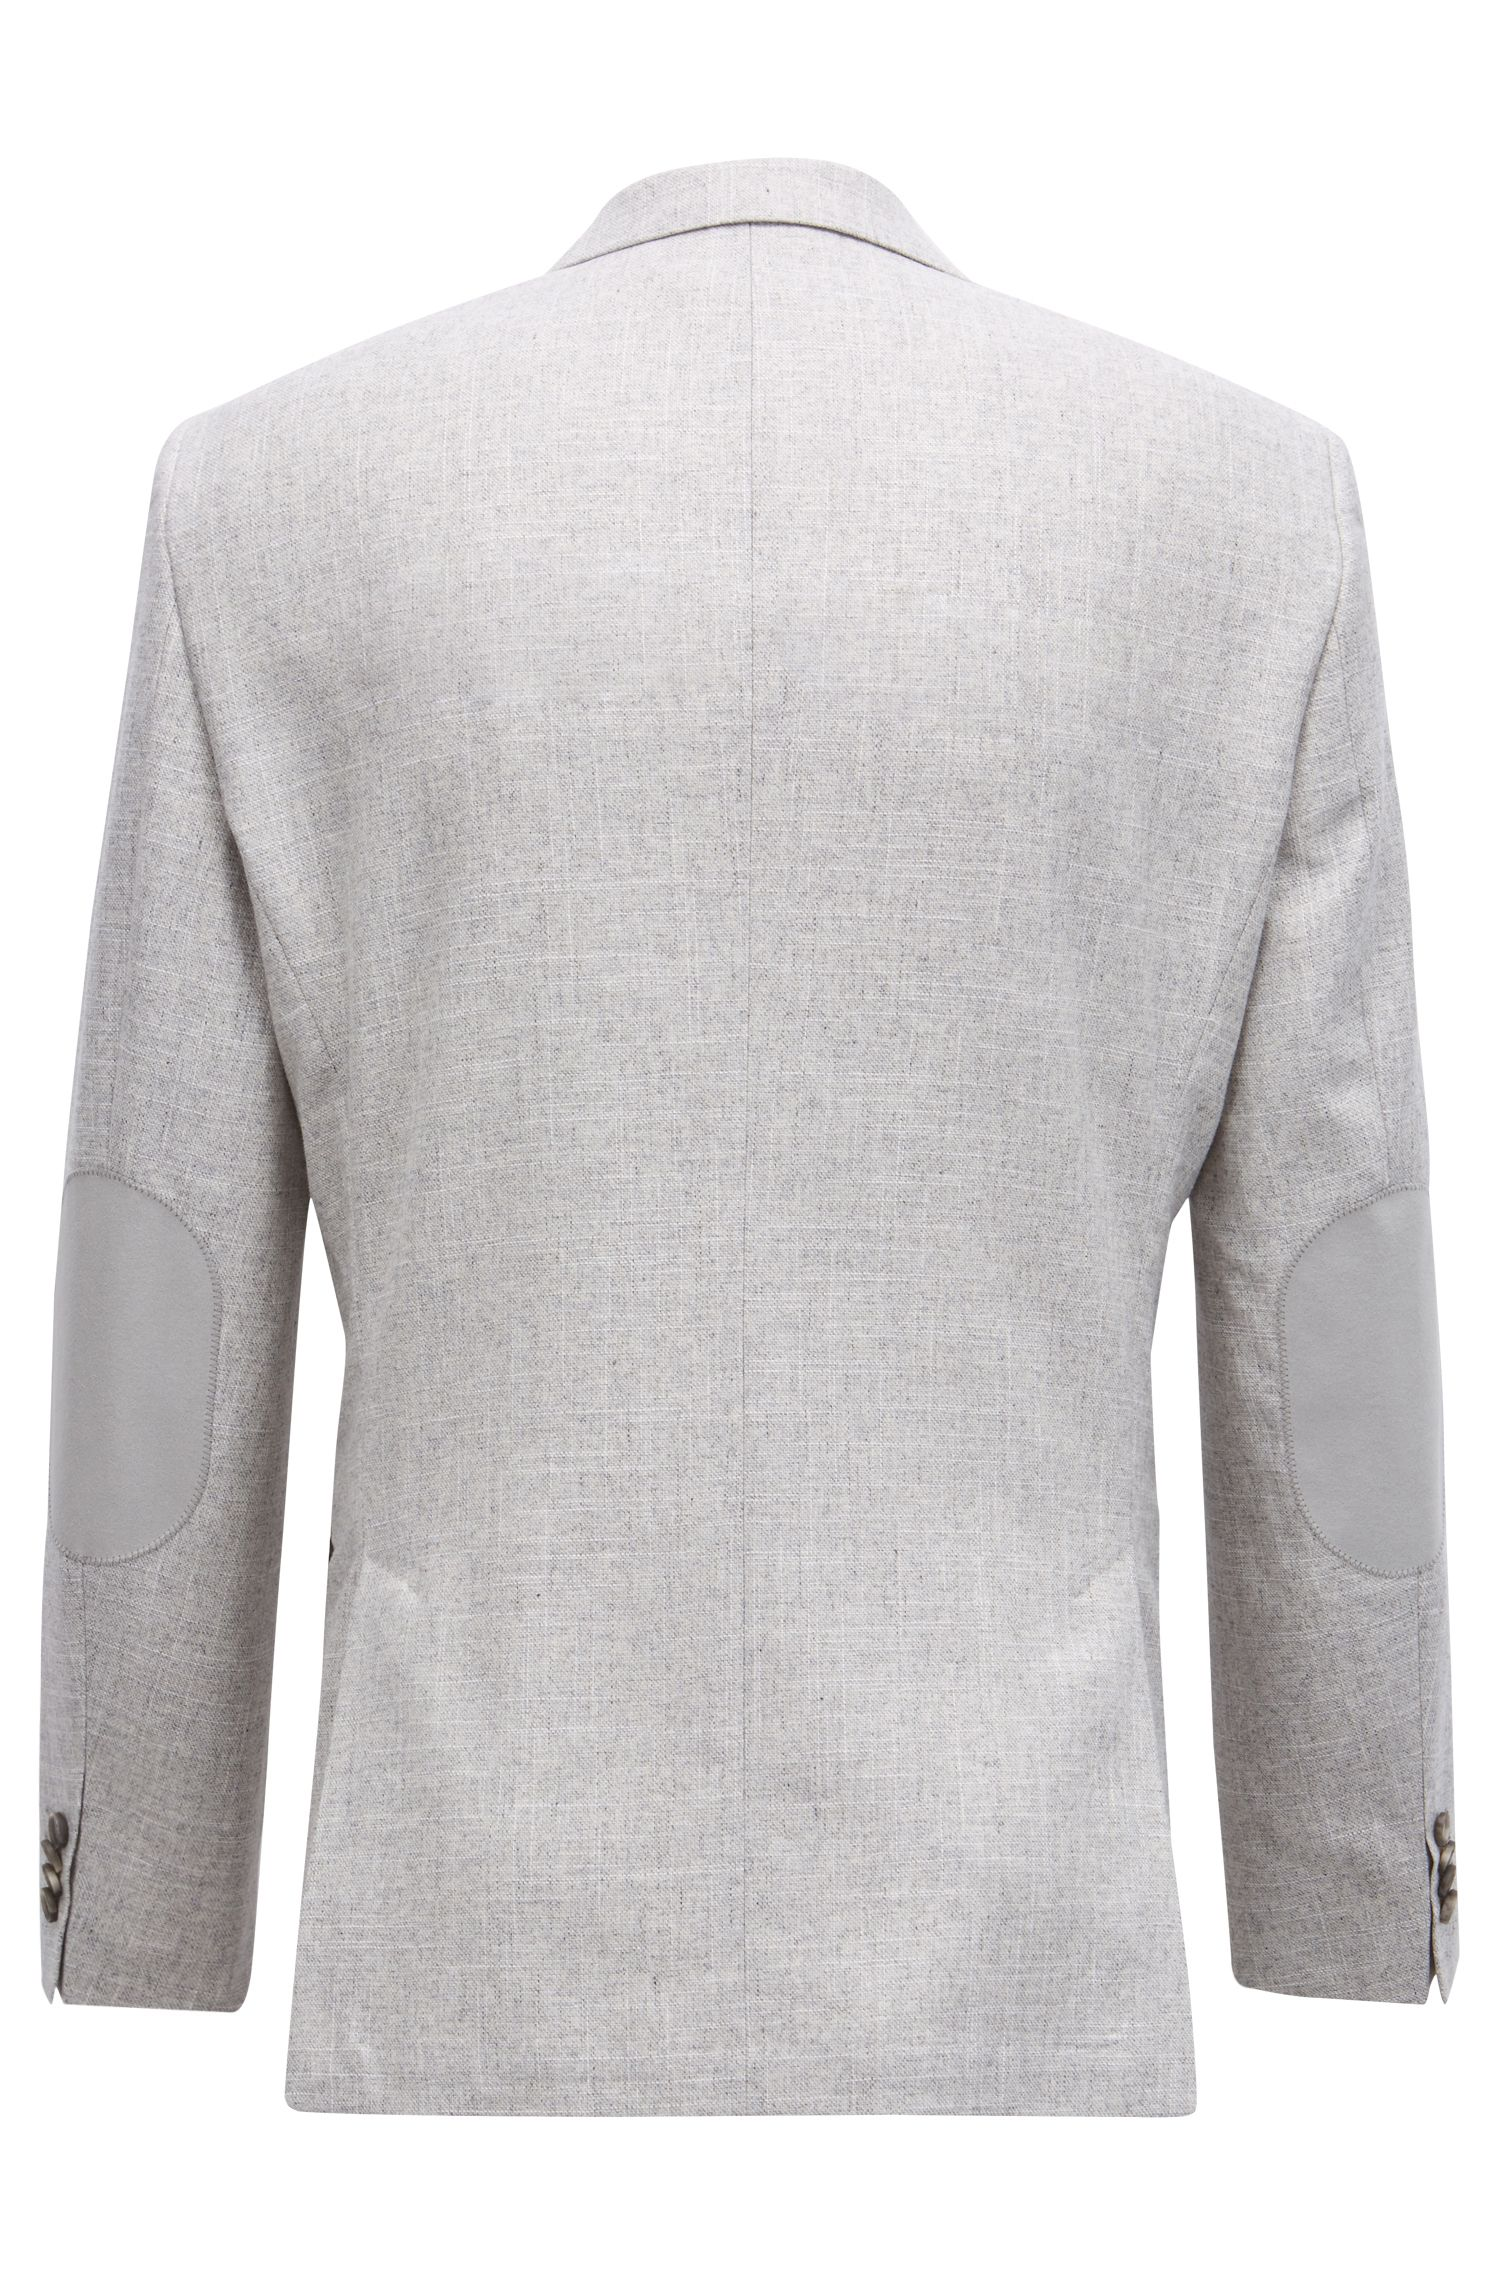 Regular-fit micro-patterned blazer with elbow patches, Silver